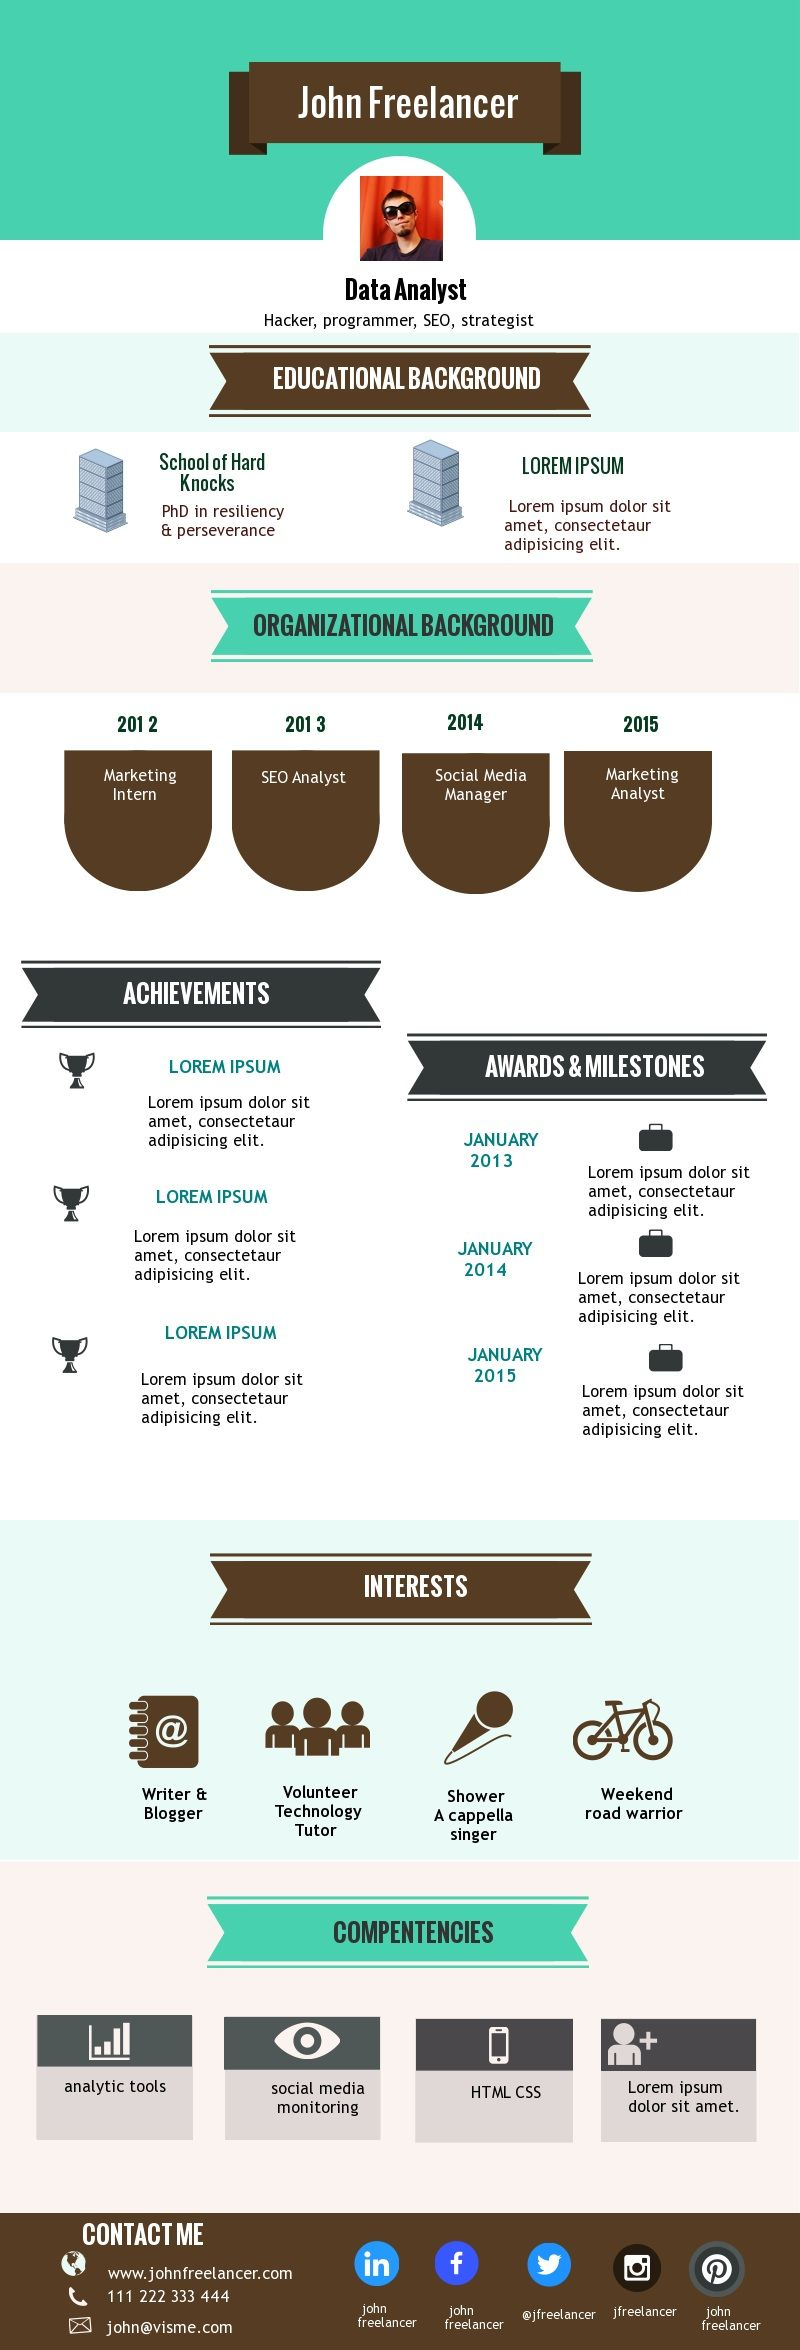 Sample Infographic Resume From Visme Template Infographic